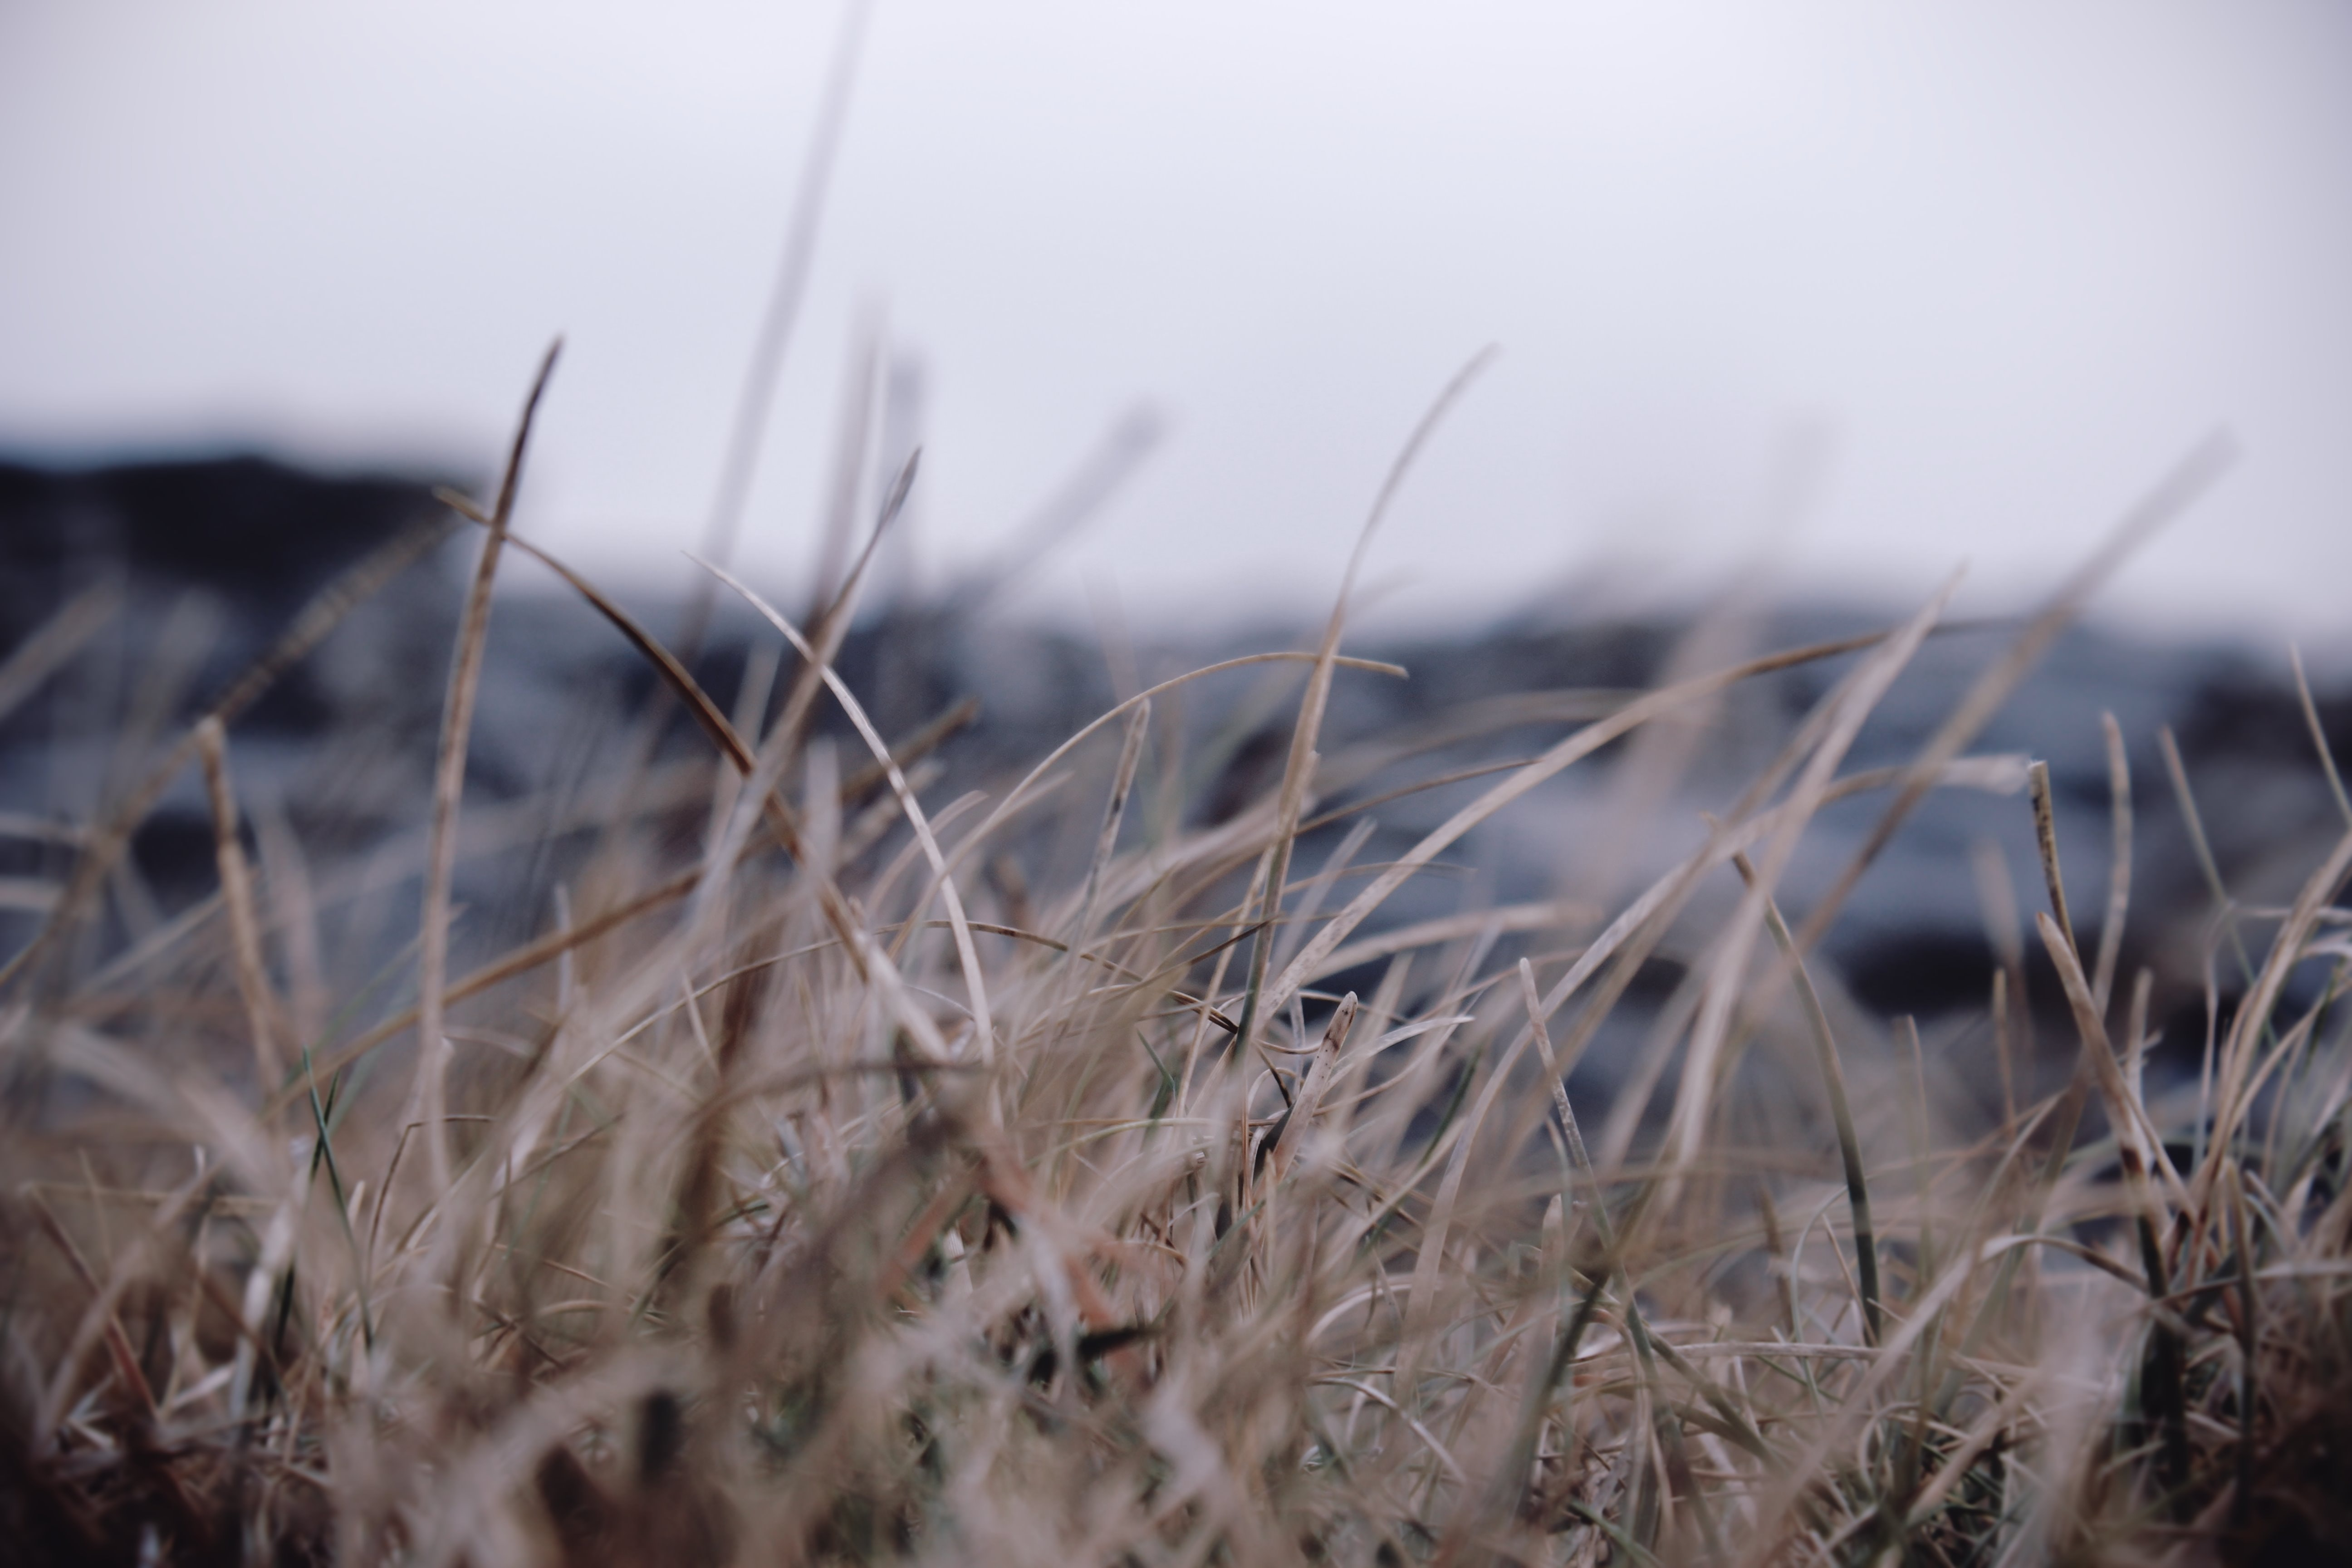 Dry dead blades of brown grass in a winter field